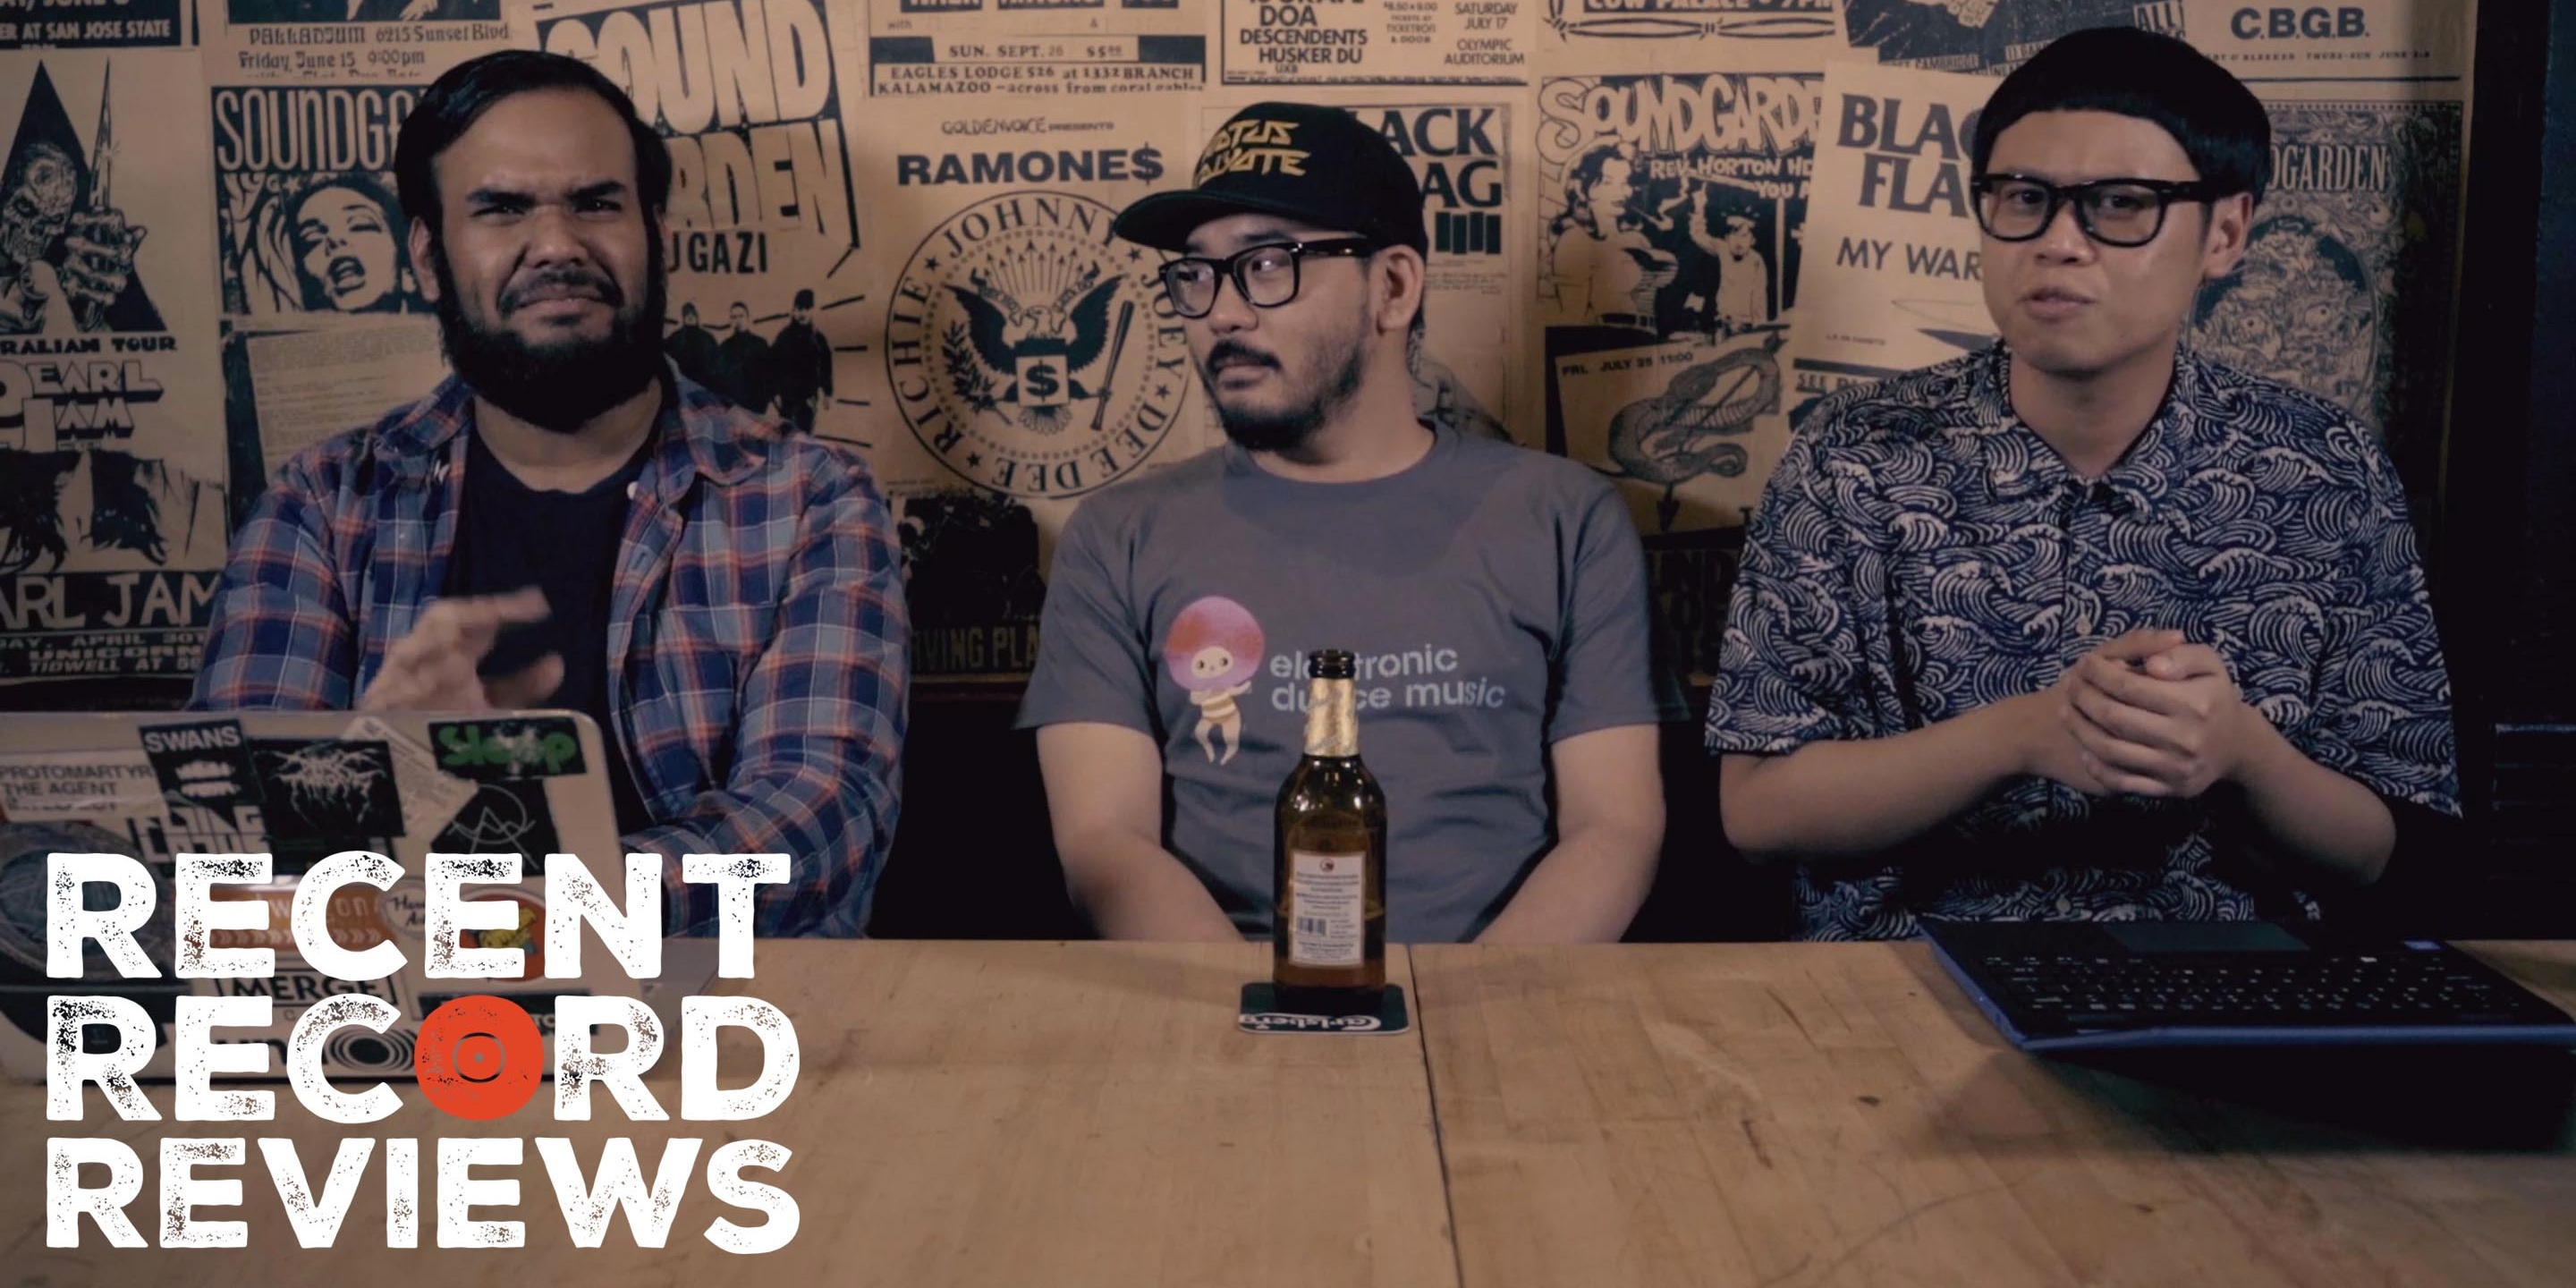 WATCH: Bandwagon Recent Record Reviews #018 - Moderat, All Saints, Luneta Freedom Jazz Collective